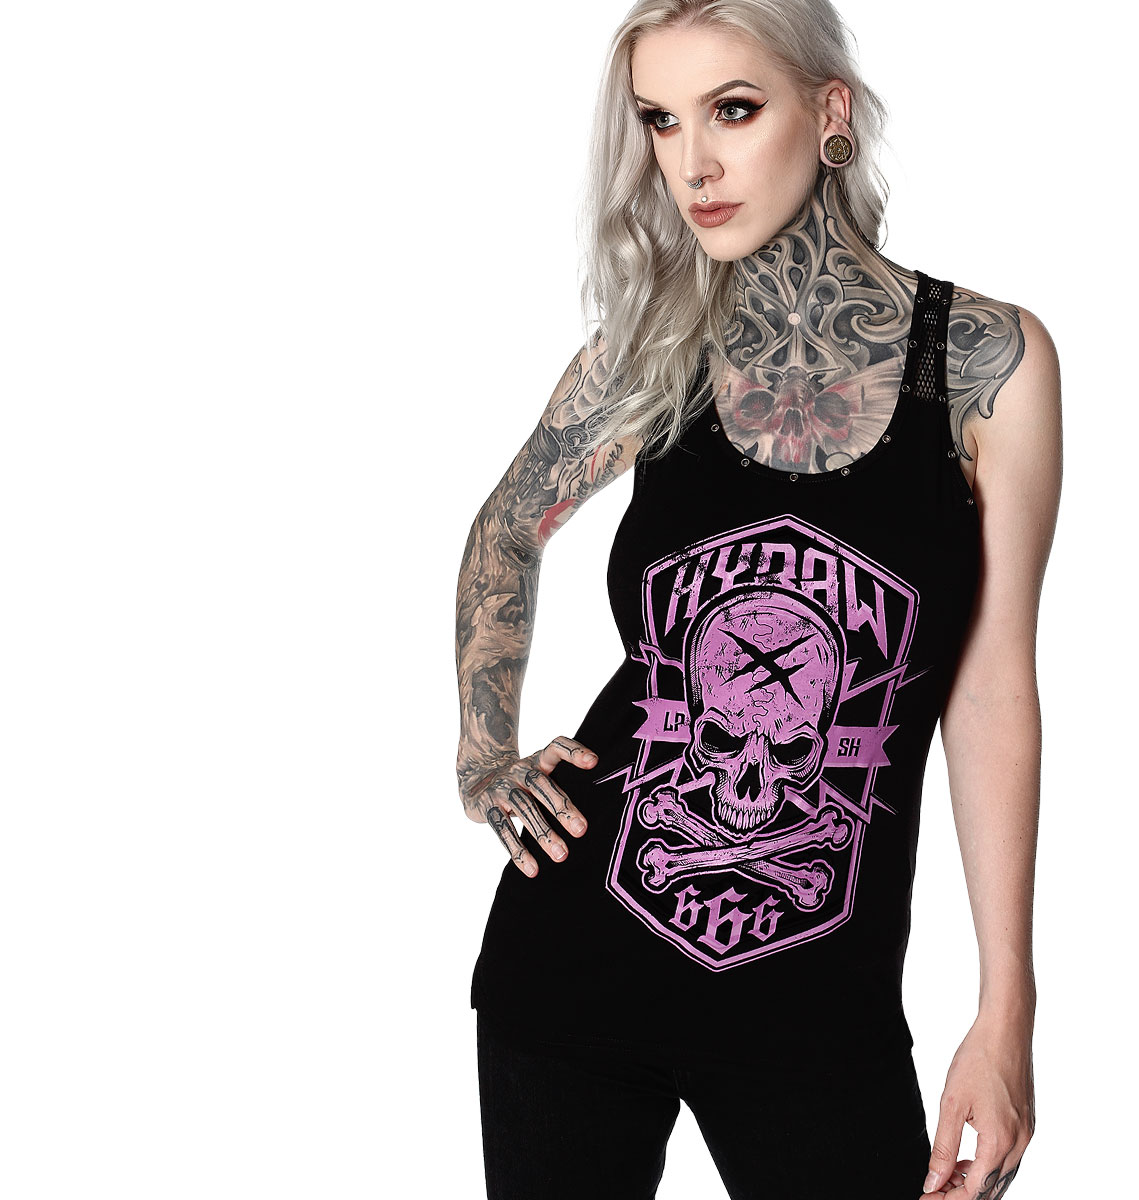 BADGE WOMENS TANK